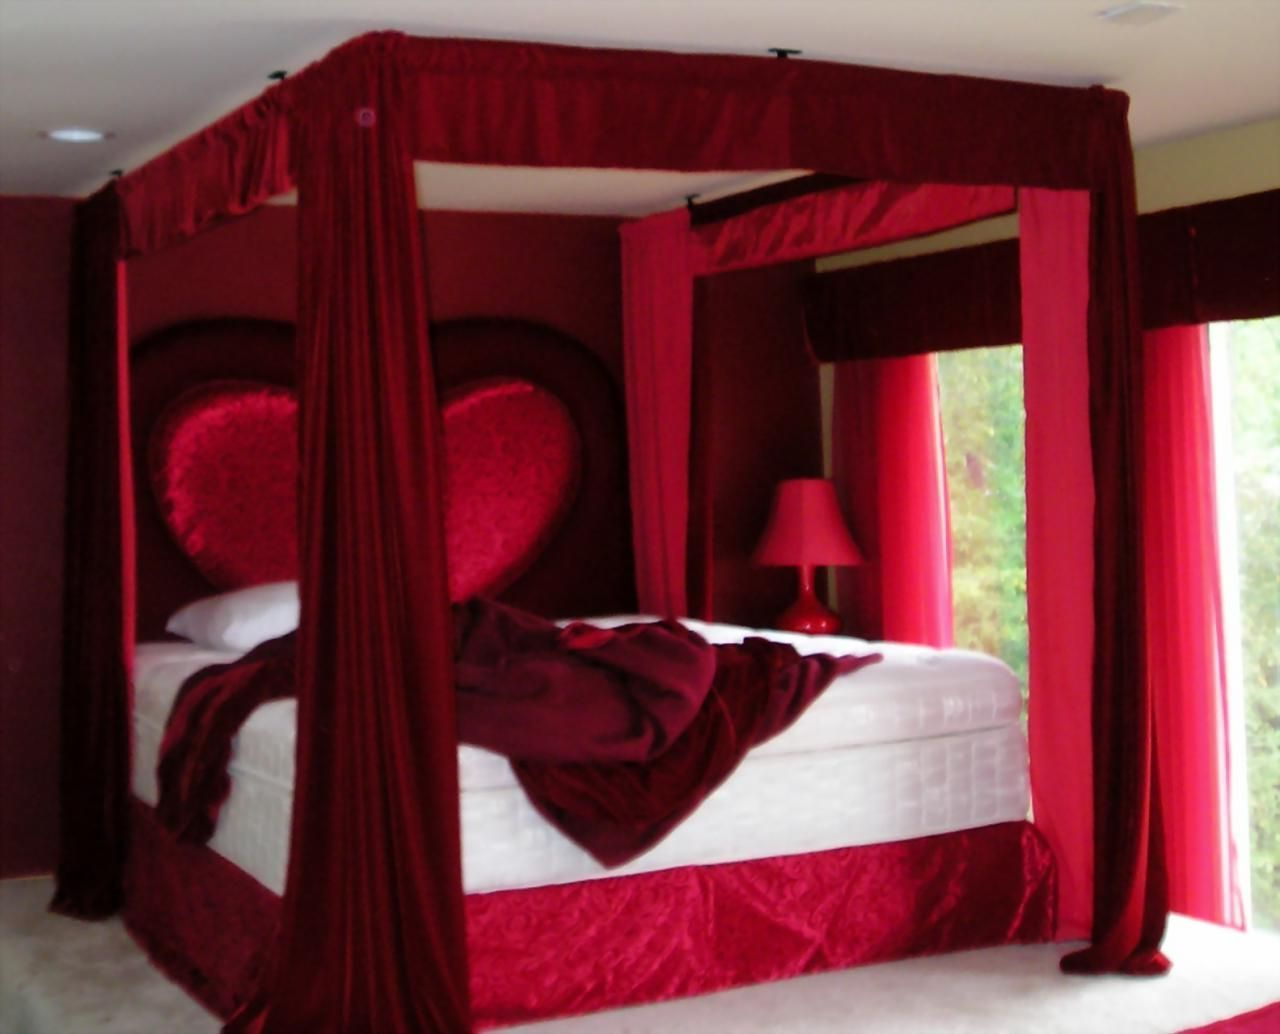 bedroom powerful bedroom design ideas in red color choices lovable bedroom idea for romantic